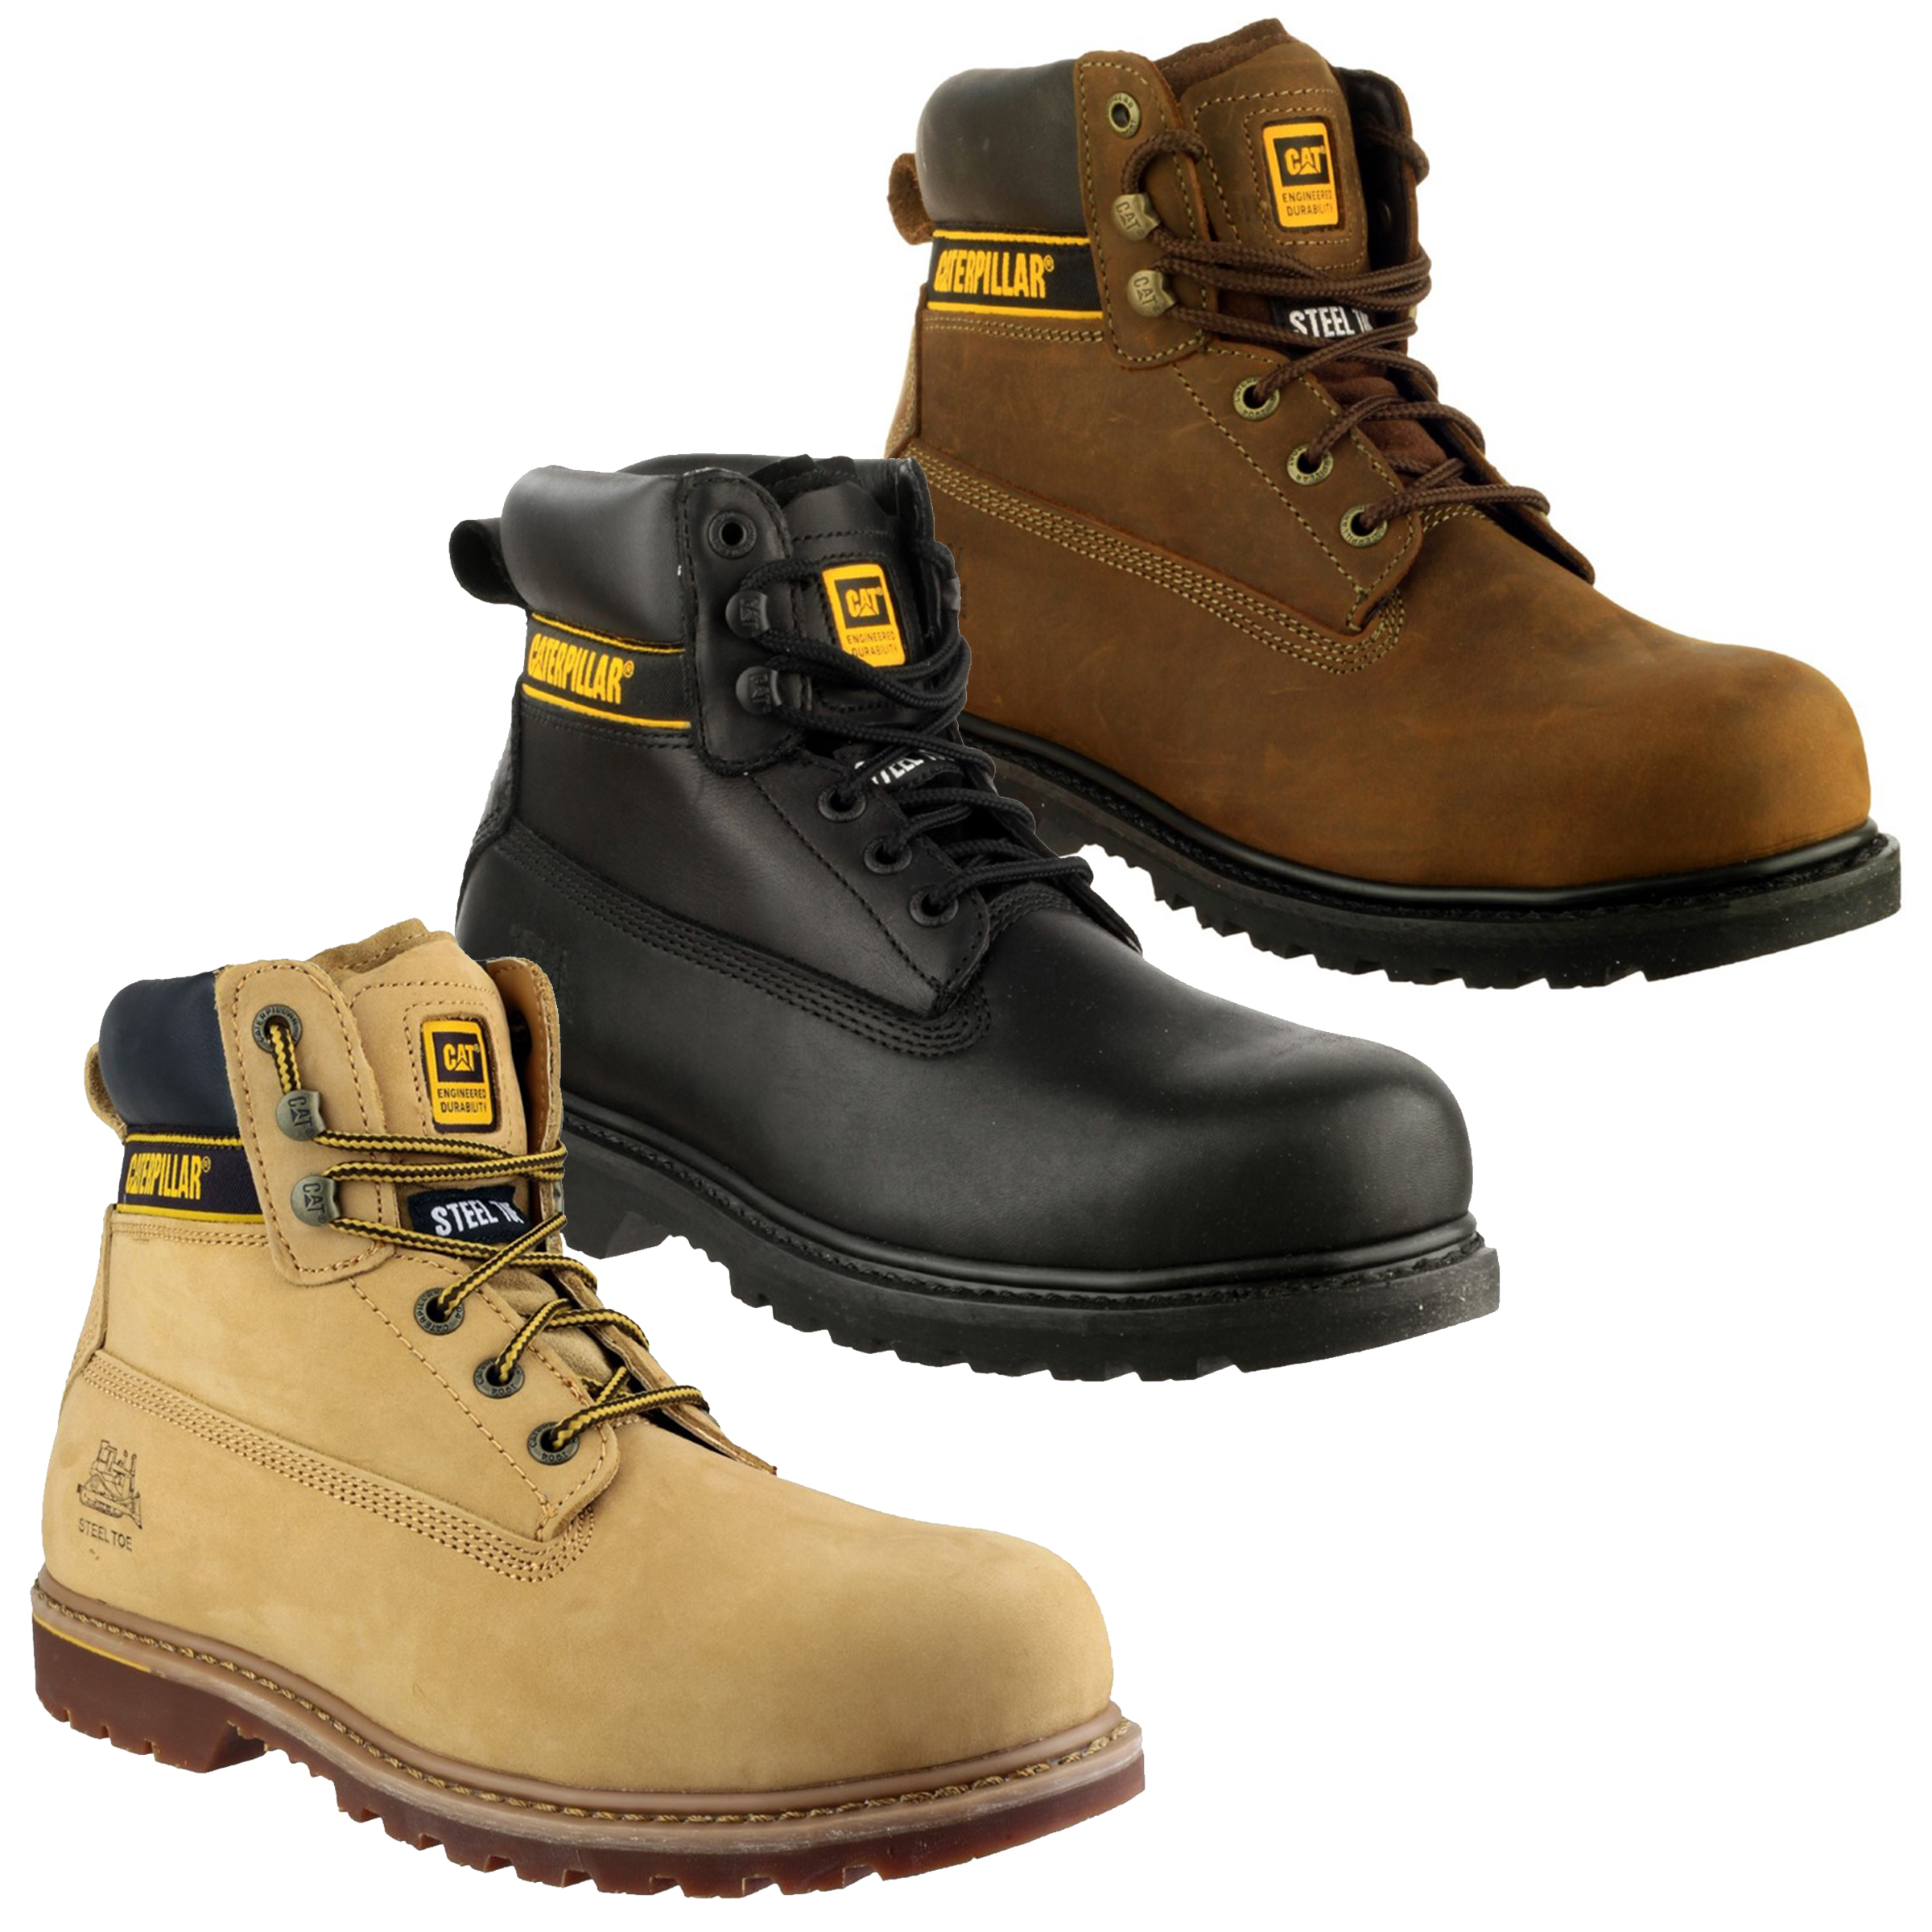 Caterpillar Holton - Mens Safety Boots